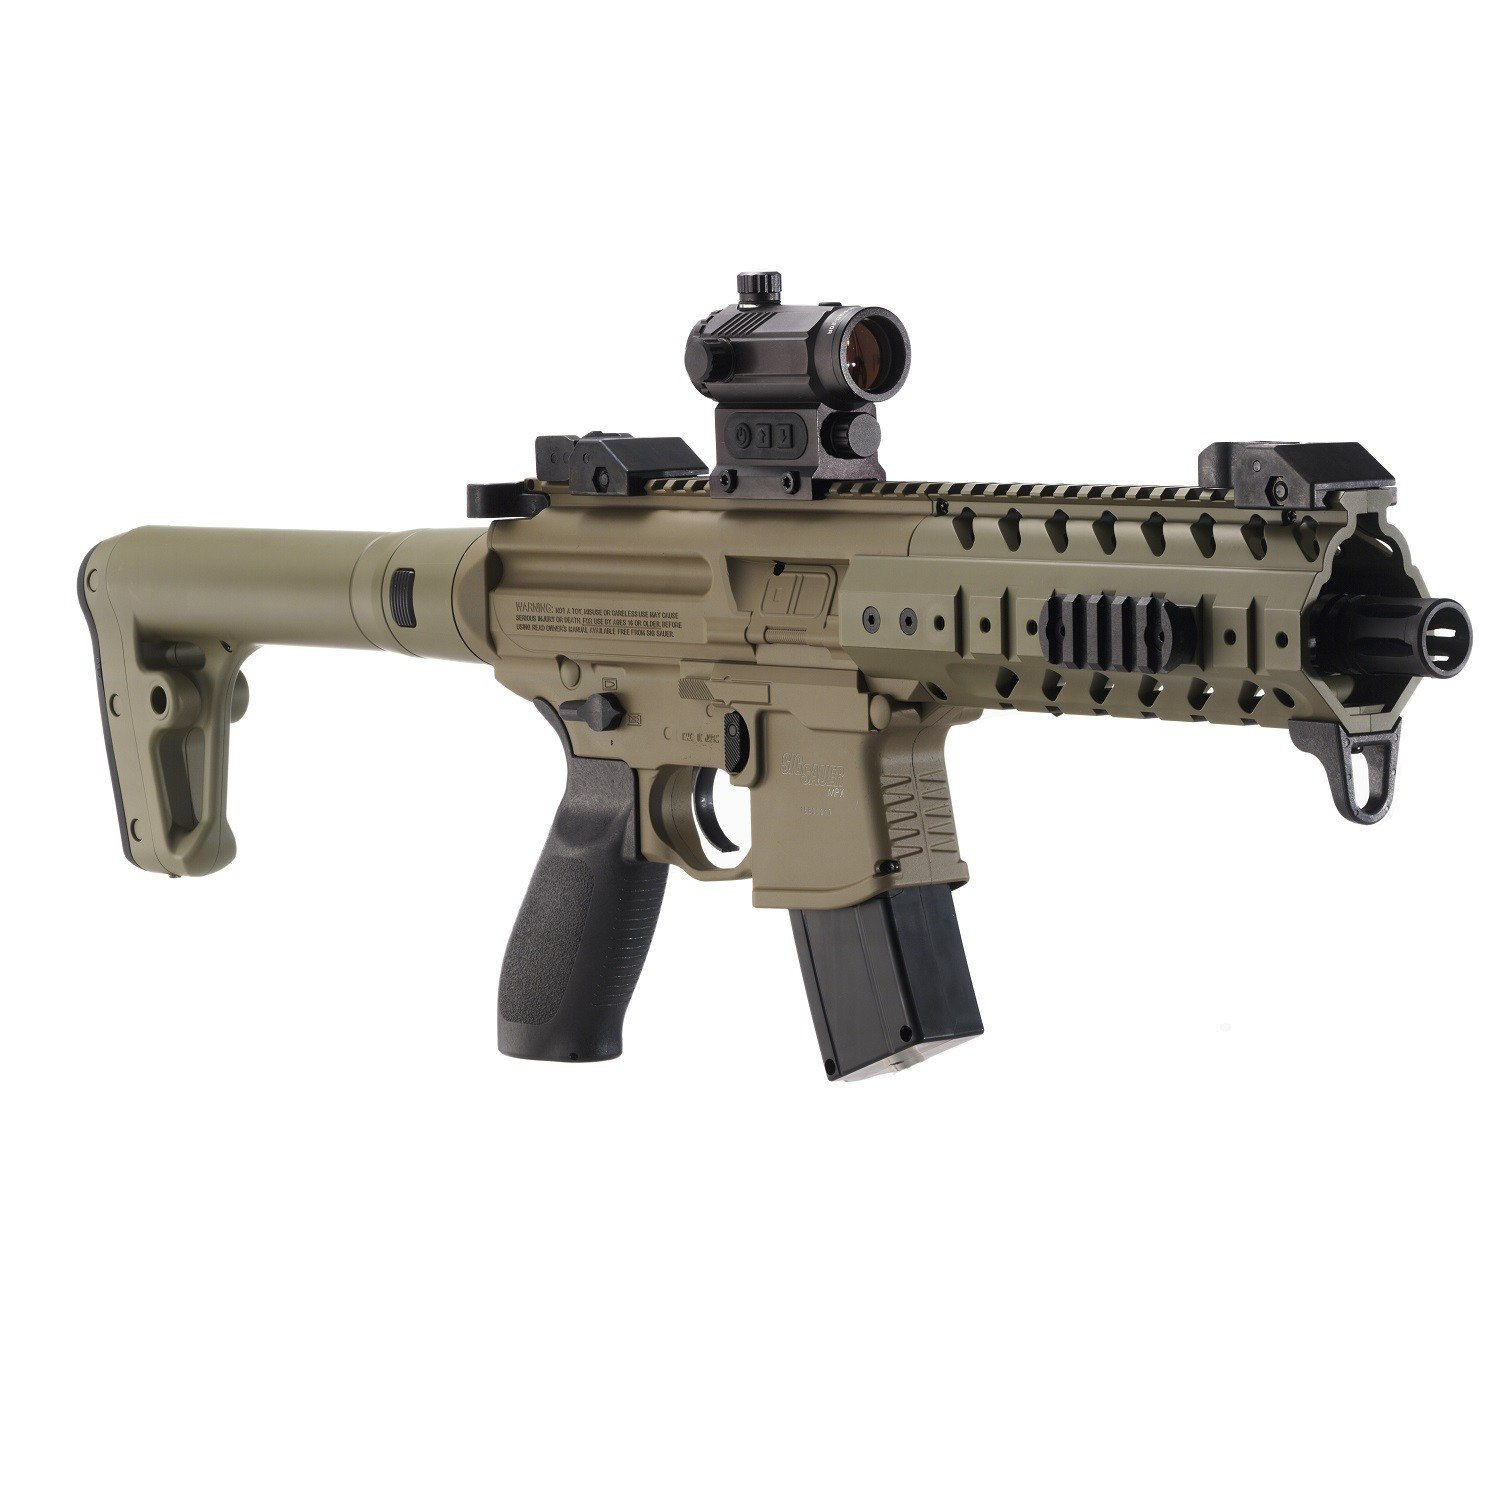 Sig Sauer MPX .177 CAL Co2 Powered (30 Rounds) SIG20R Red Dot Air Rifle, Flat Dark Earth